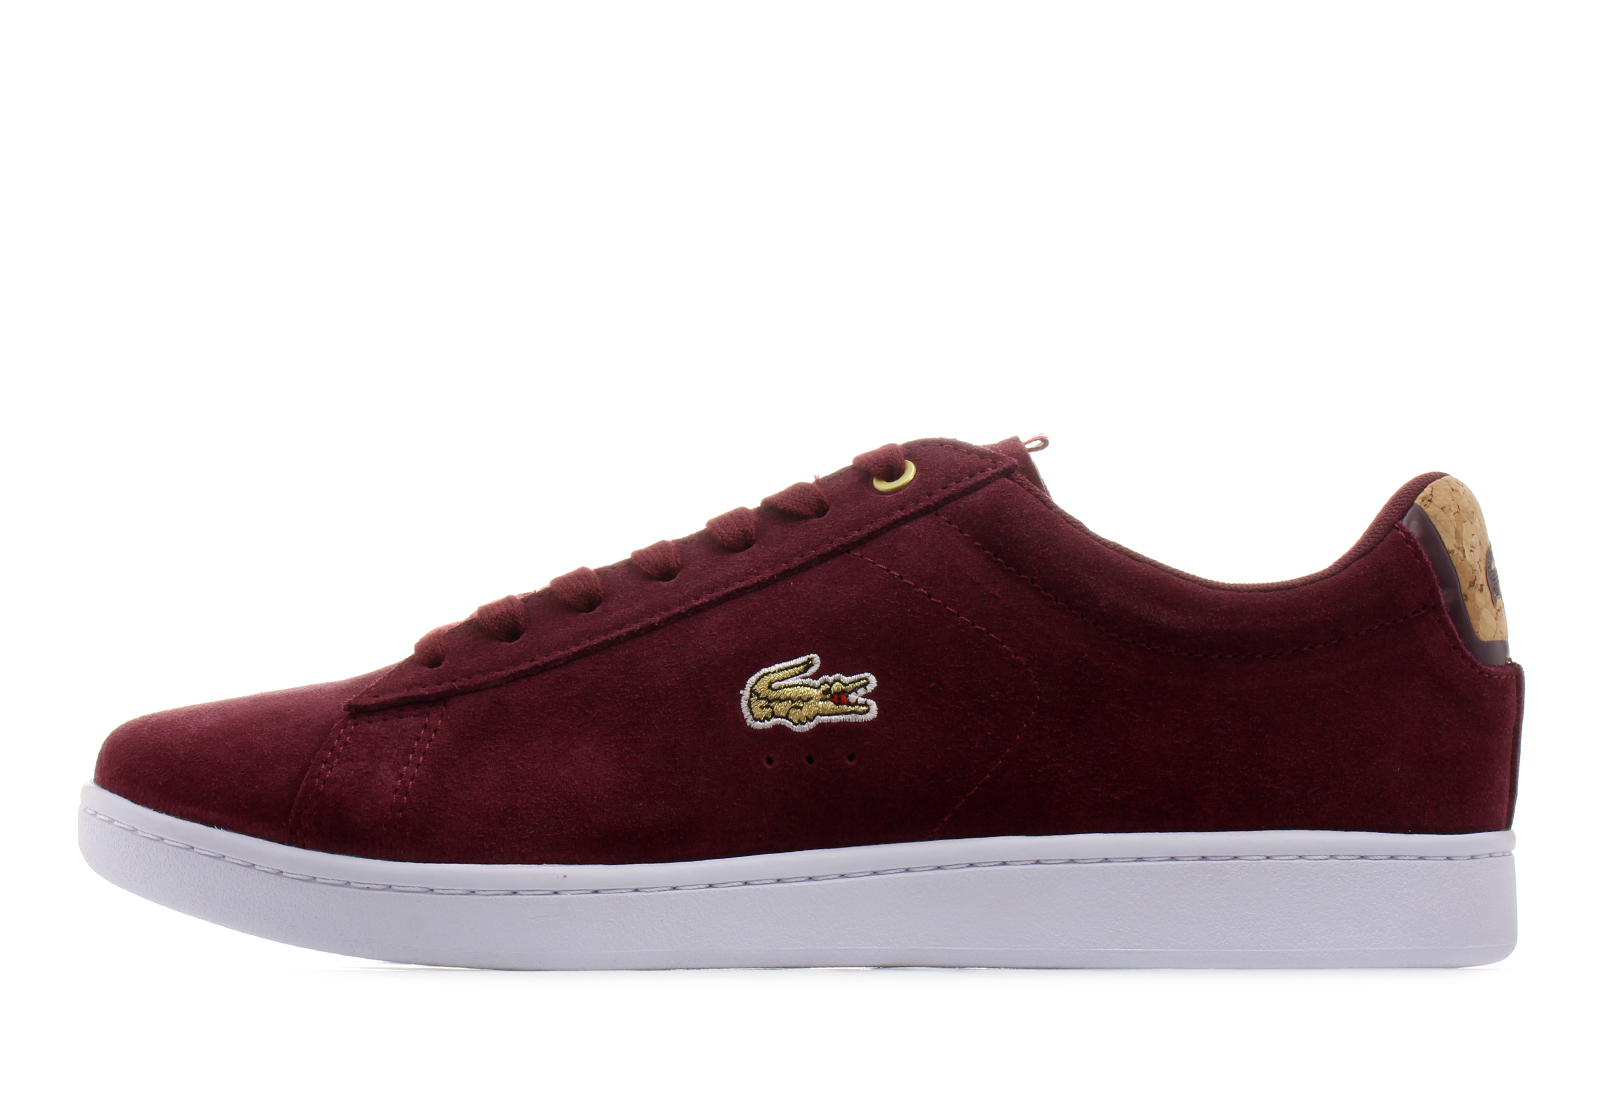 Lacoste Shoes - Carnaby Evo 118 4 - 181spm0007-2h2 - Online shop for ... 9d8b5ff702